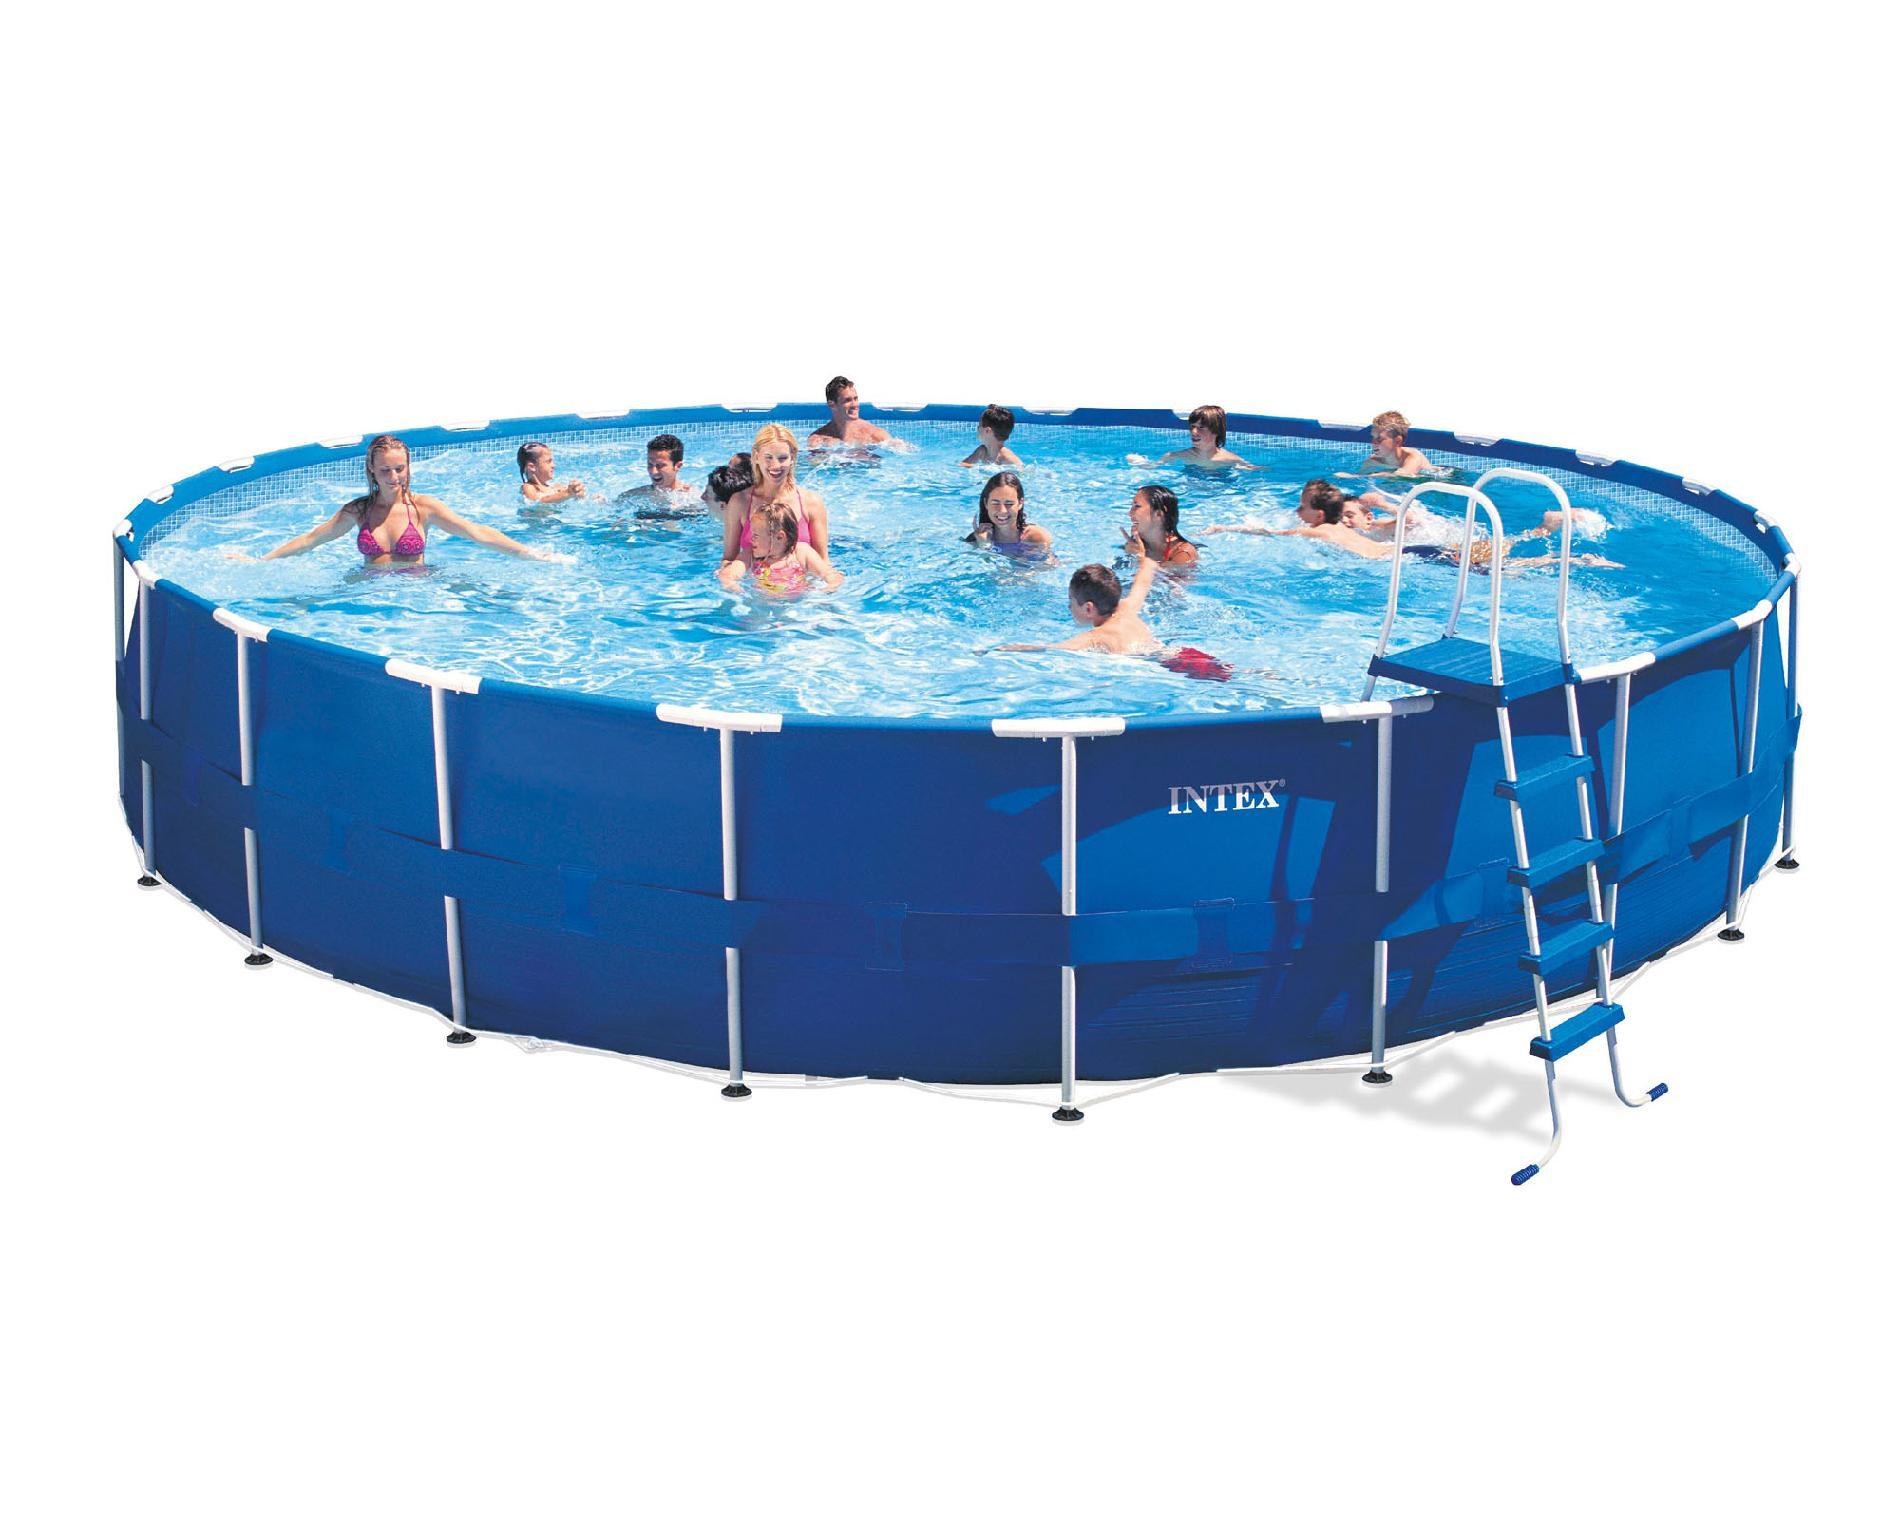 Intex Pool Frame Rund Upc 078257301775 Intex 24 Foot Easy Set Up Metal Frame Pool